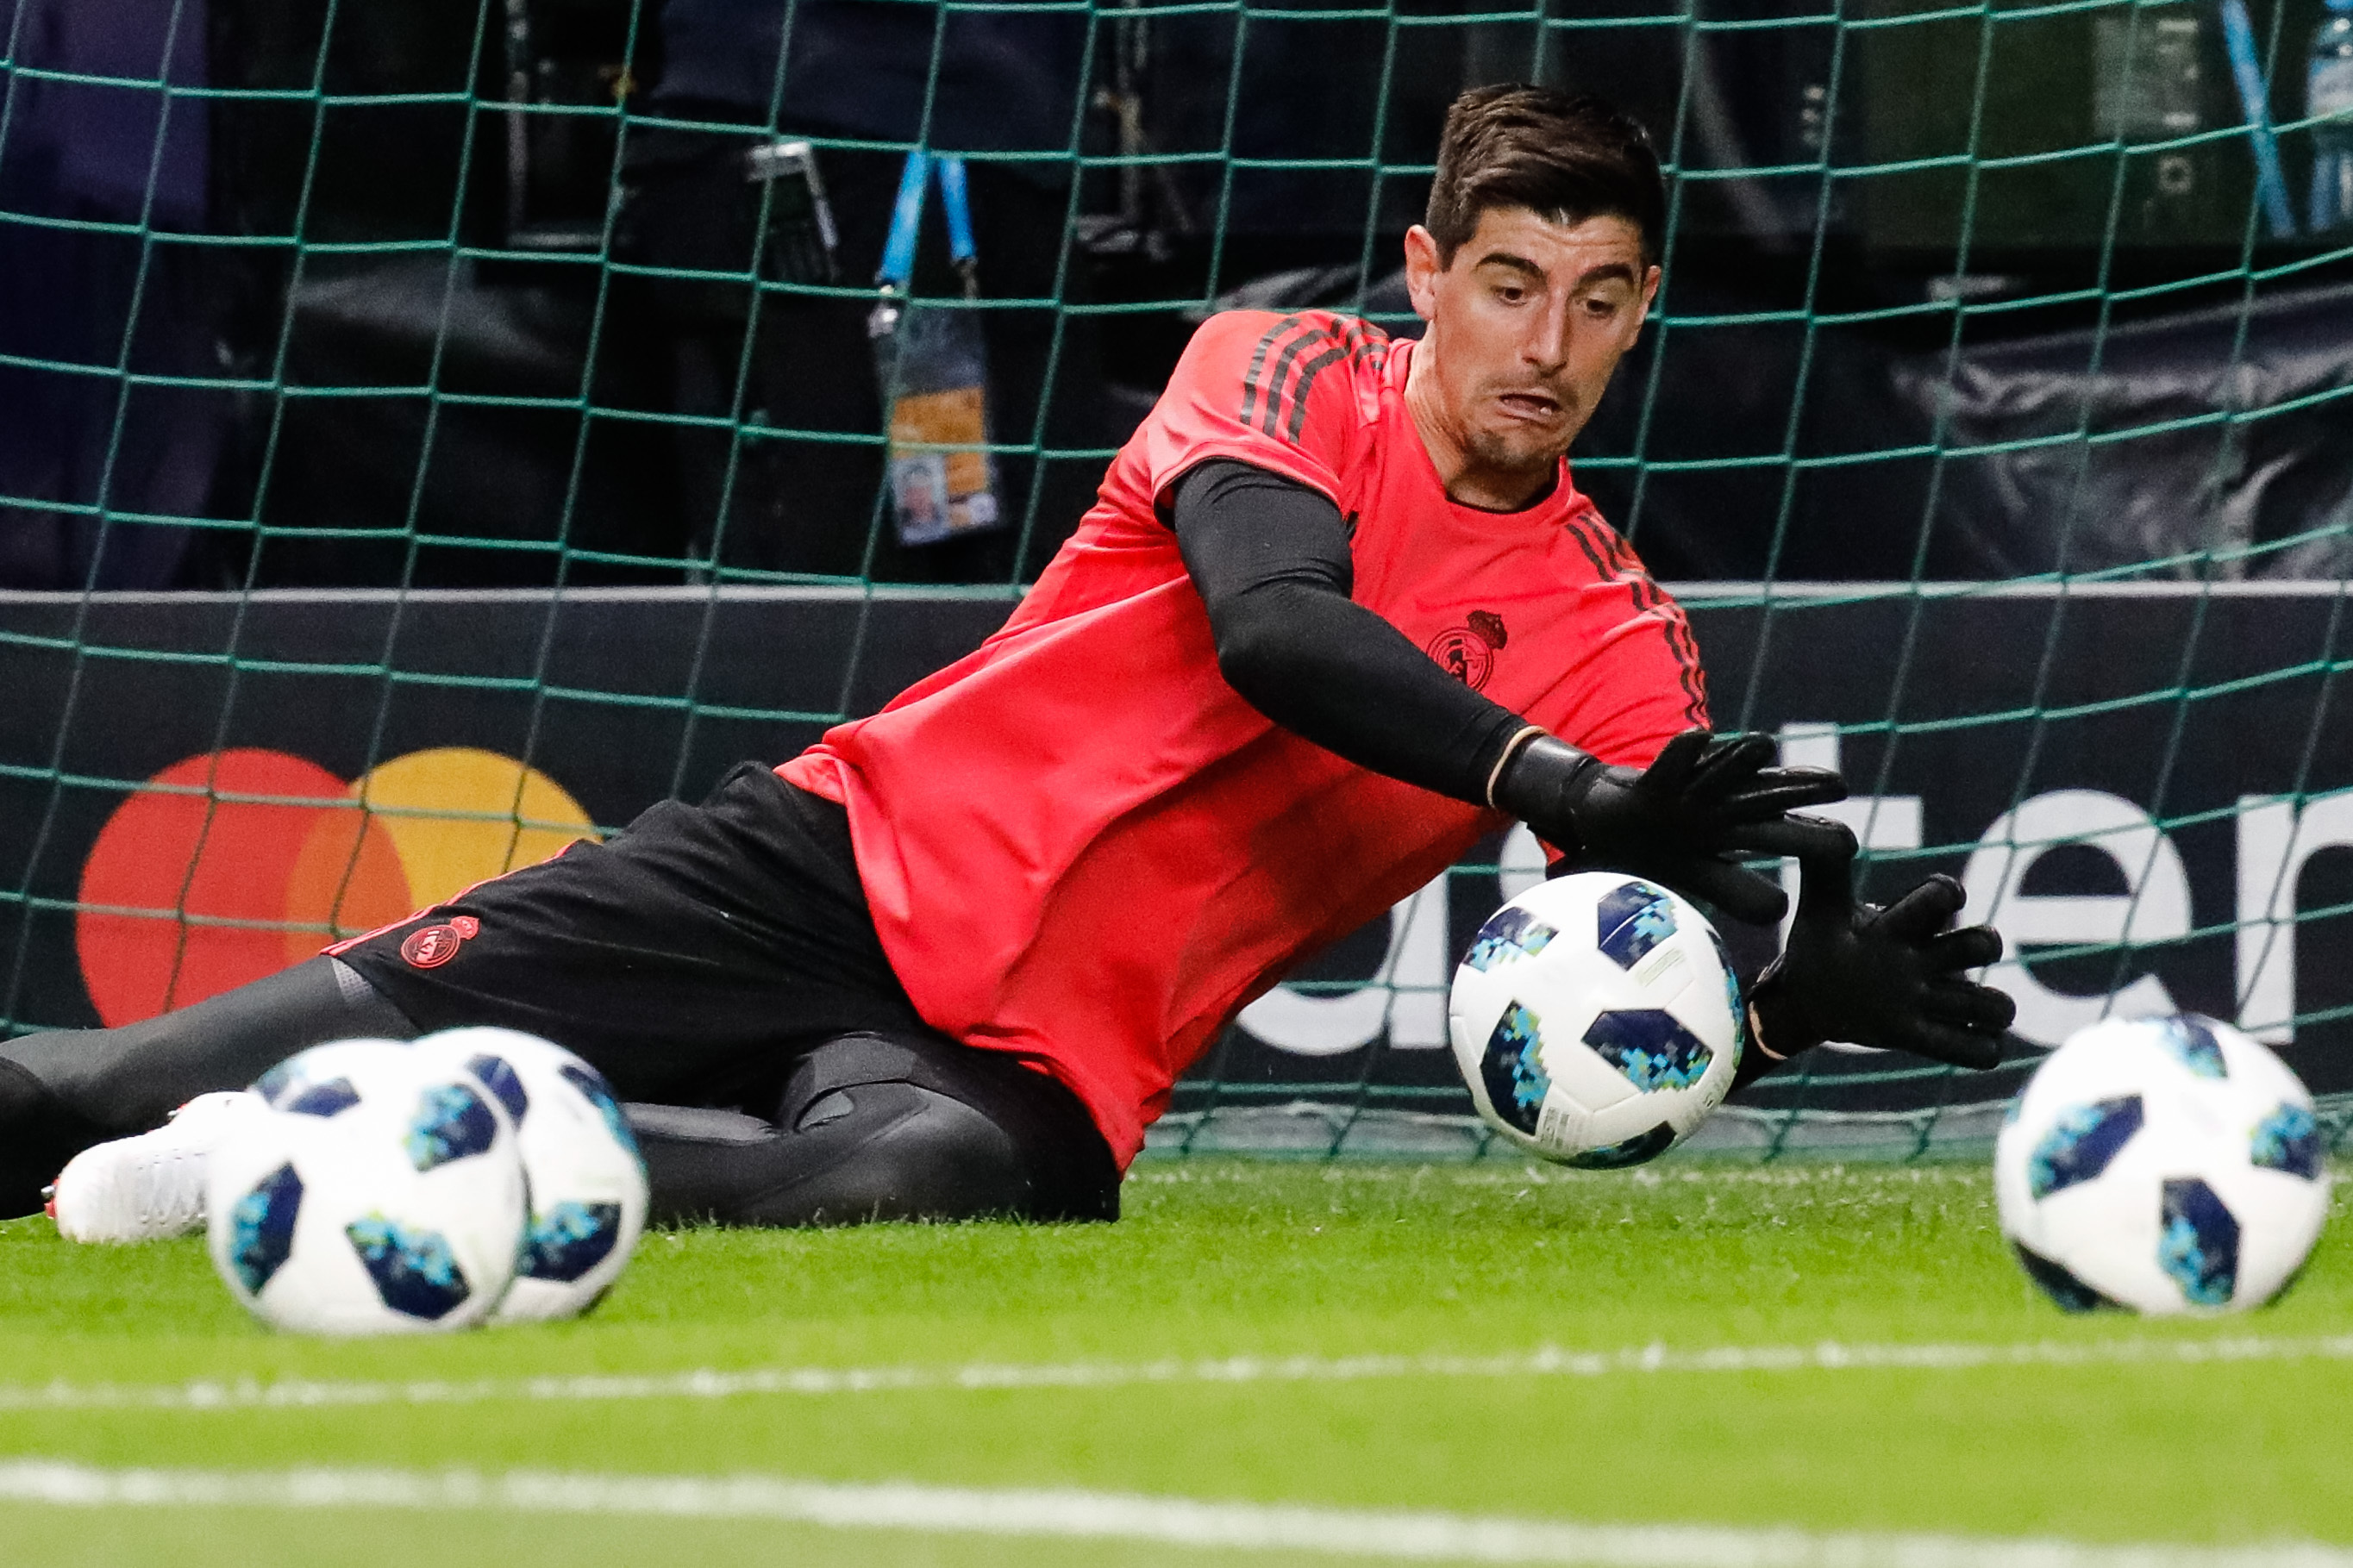 Thibaut Courtois not guaranteed to be first choice, warns Julen Lopetegui